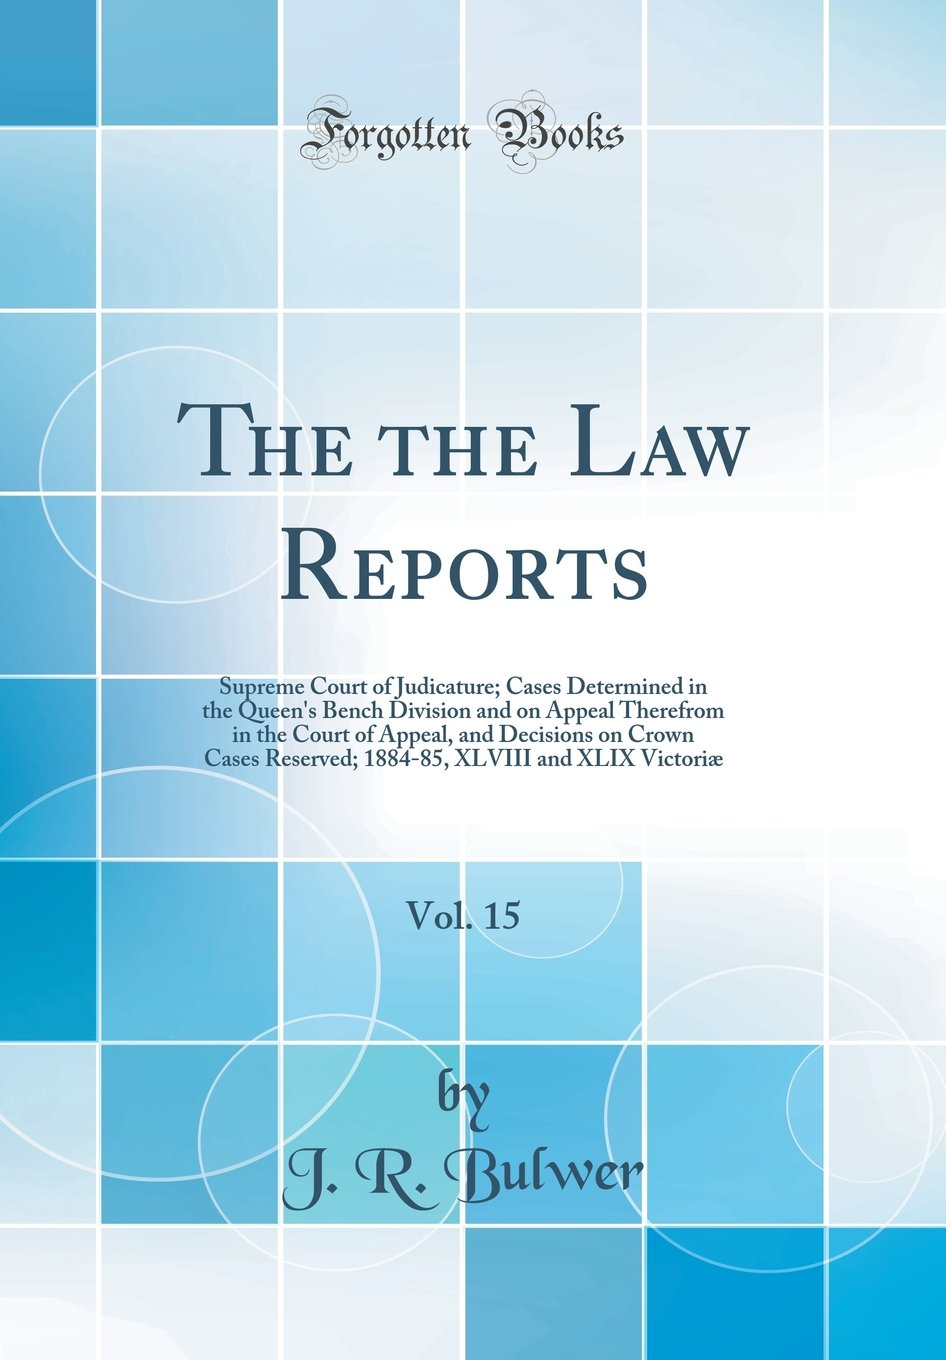 The the Law Reports, Vol. 15: Supreme Court of Judicature; Cases Determined in the Queen's Bench Division and on Appeal Therefrom in the Court of ... XLVIII and XLIX Victoriæ (Classic Reprint) PDF Text fb2 ebook